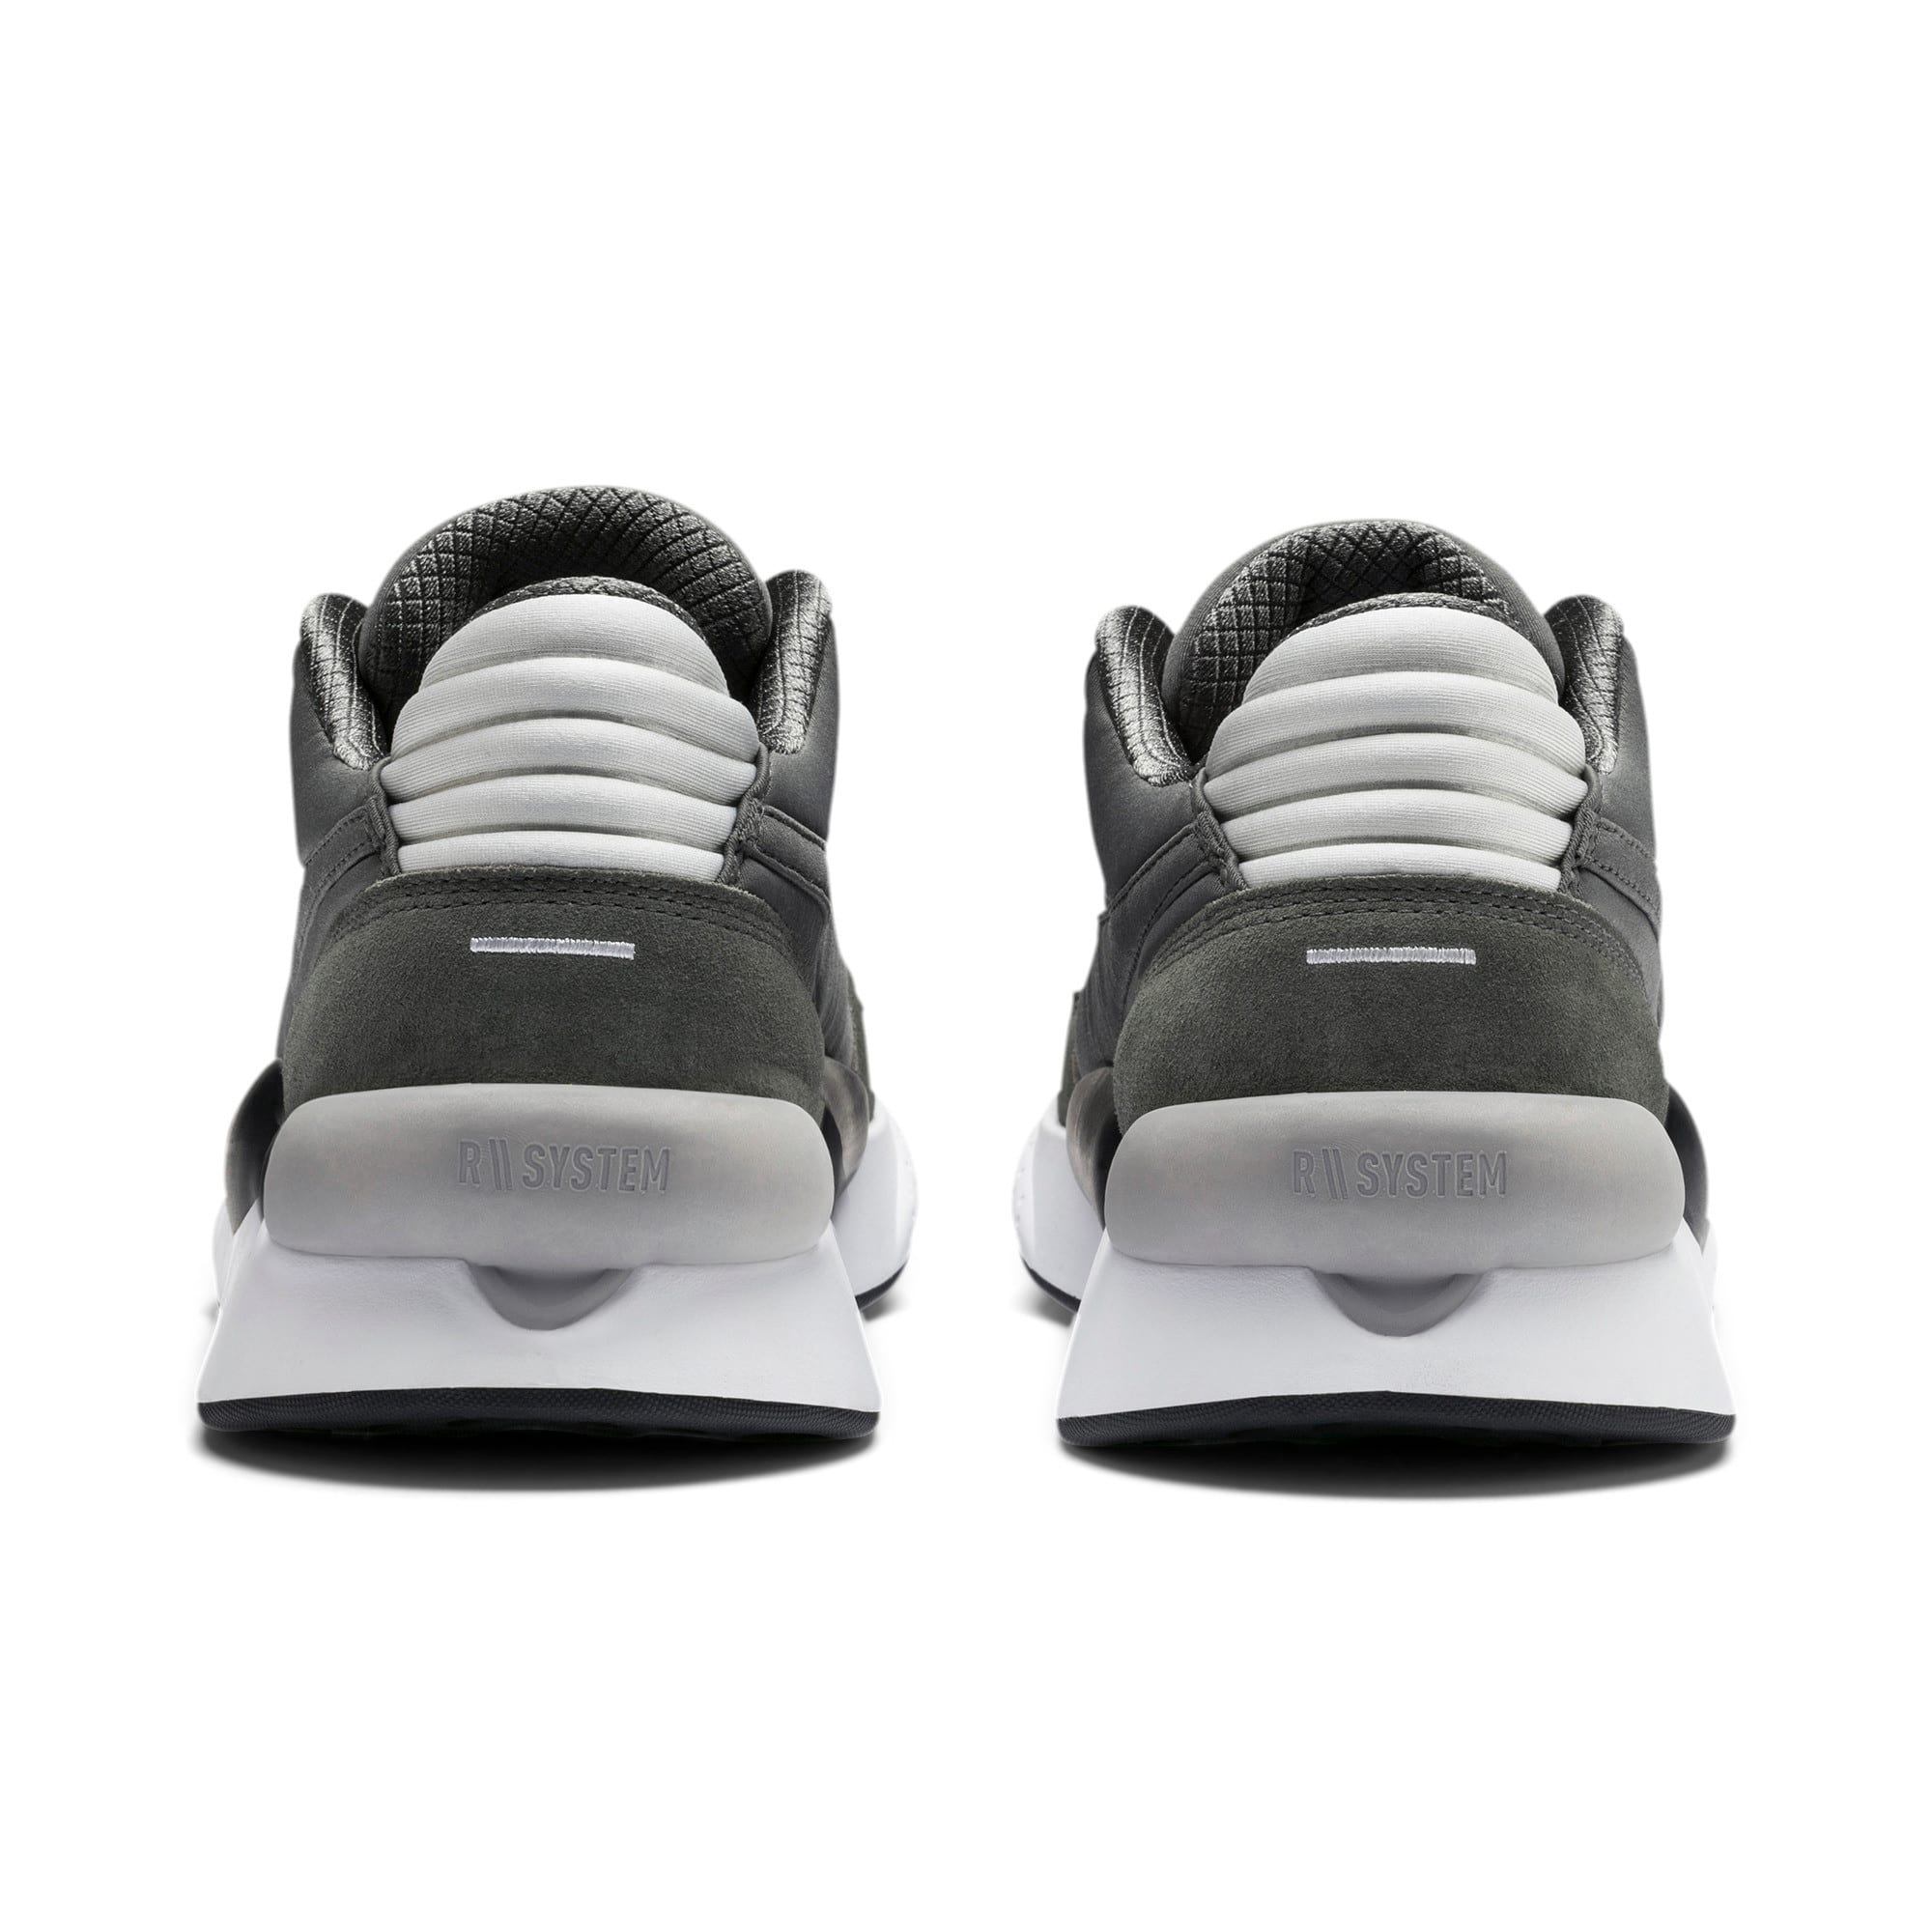 Thumbnail 3 of RS 9.8 Gravity Trainers, CASTLEROCK-Puma Black, medium